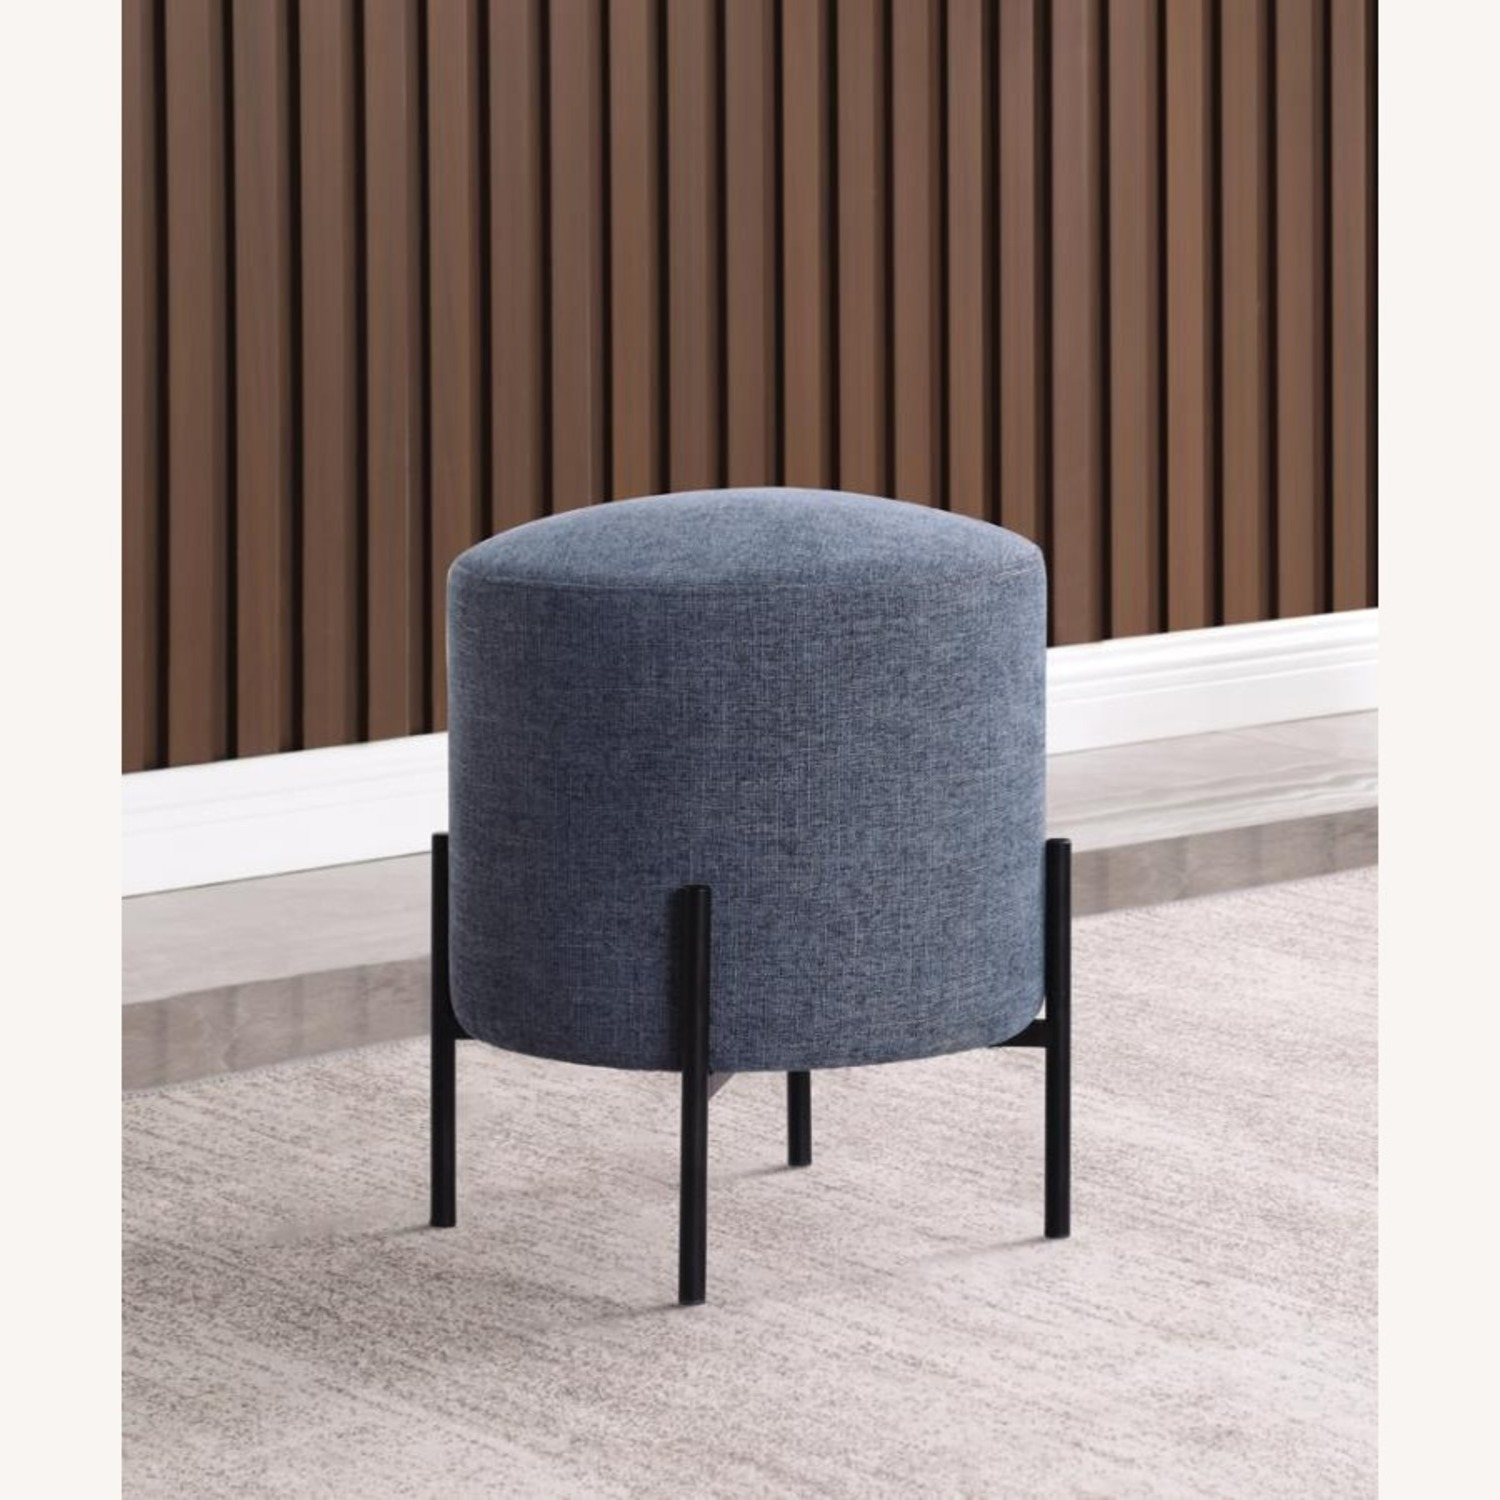 Ottoman In Teal & Chenille Upholstery W/Black Legs - image-2